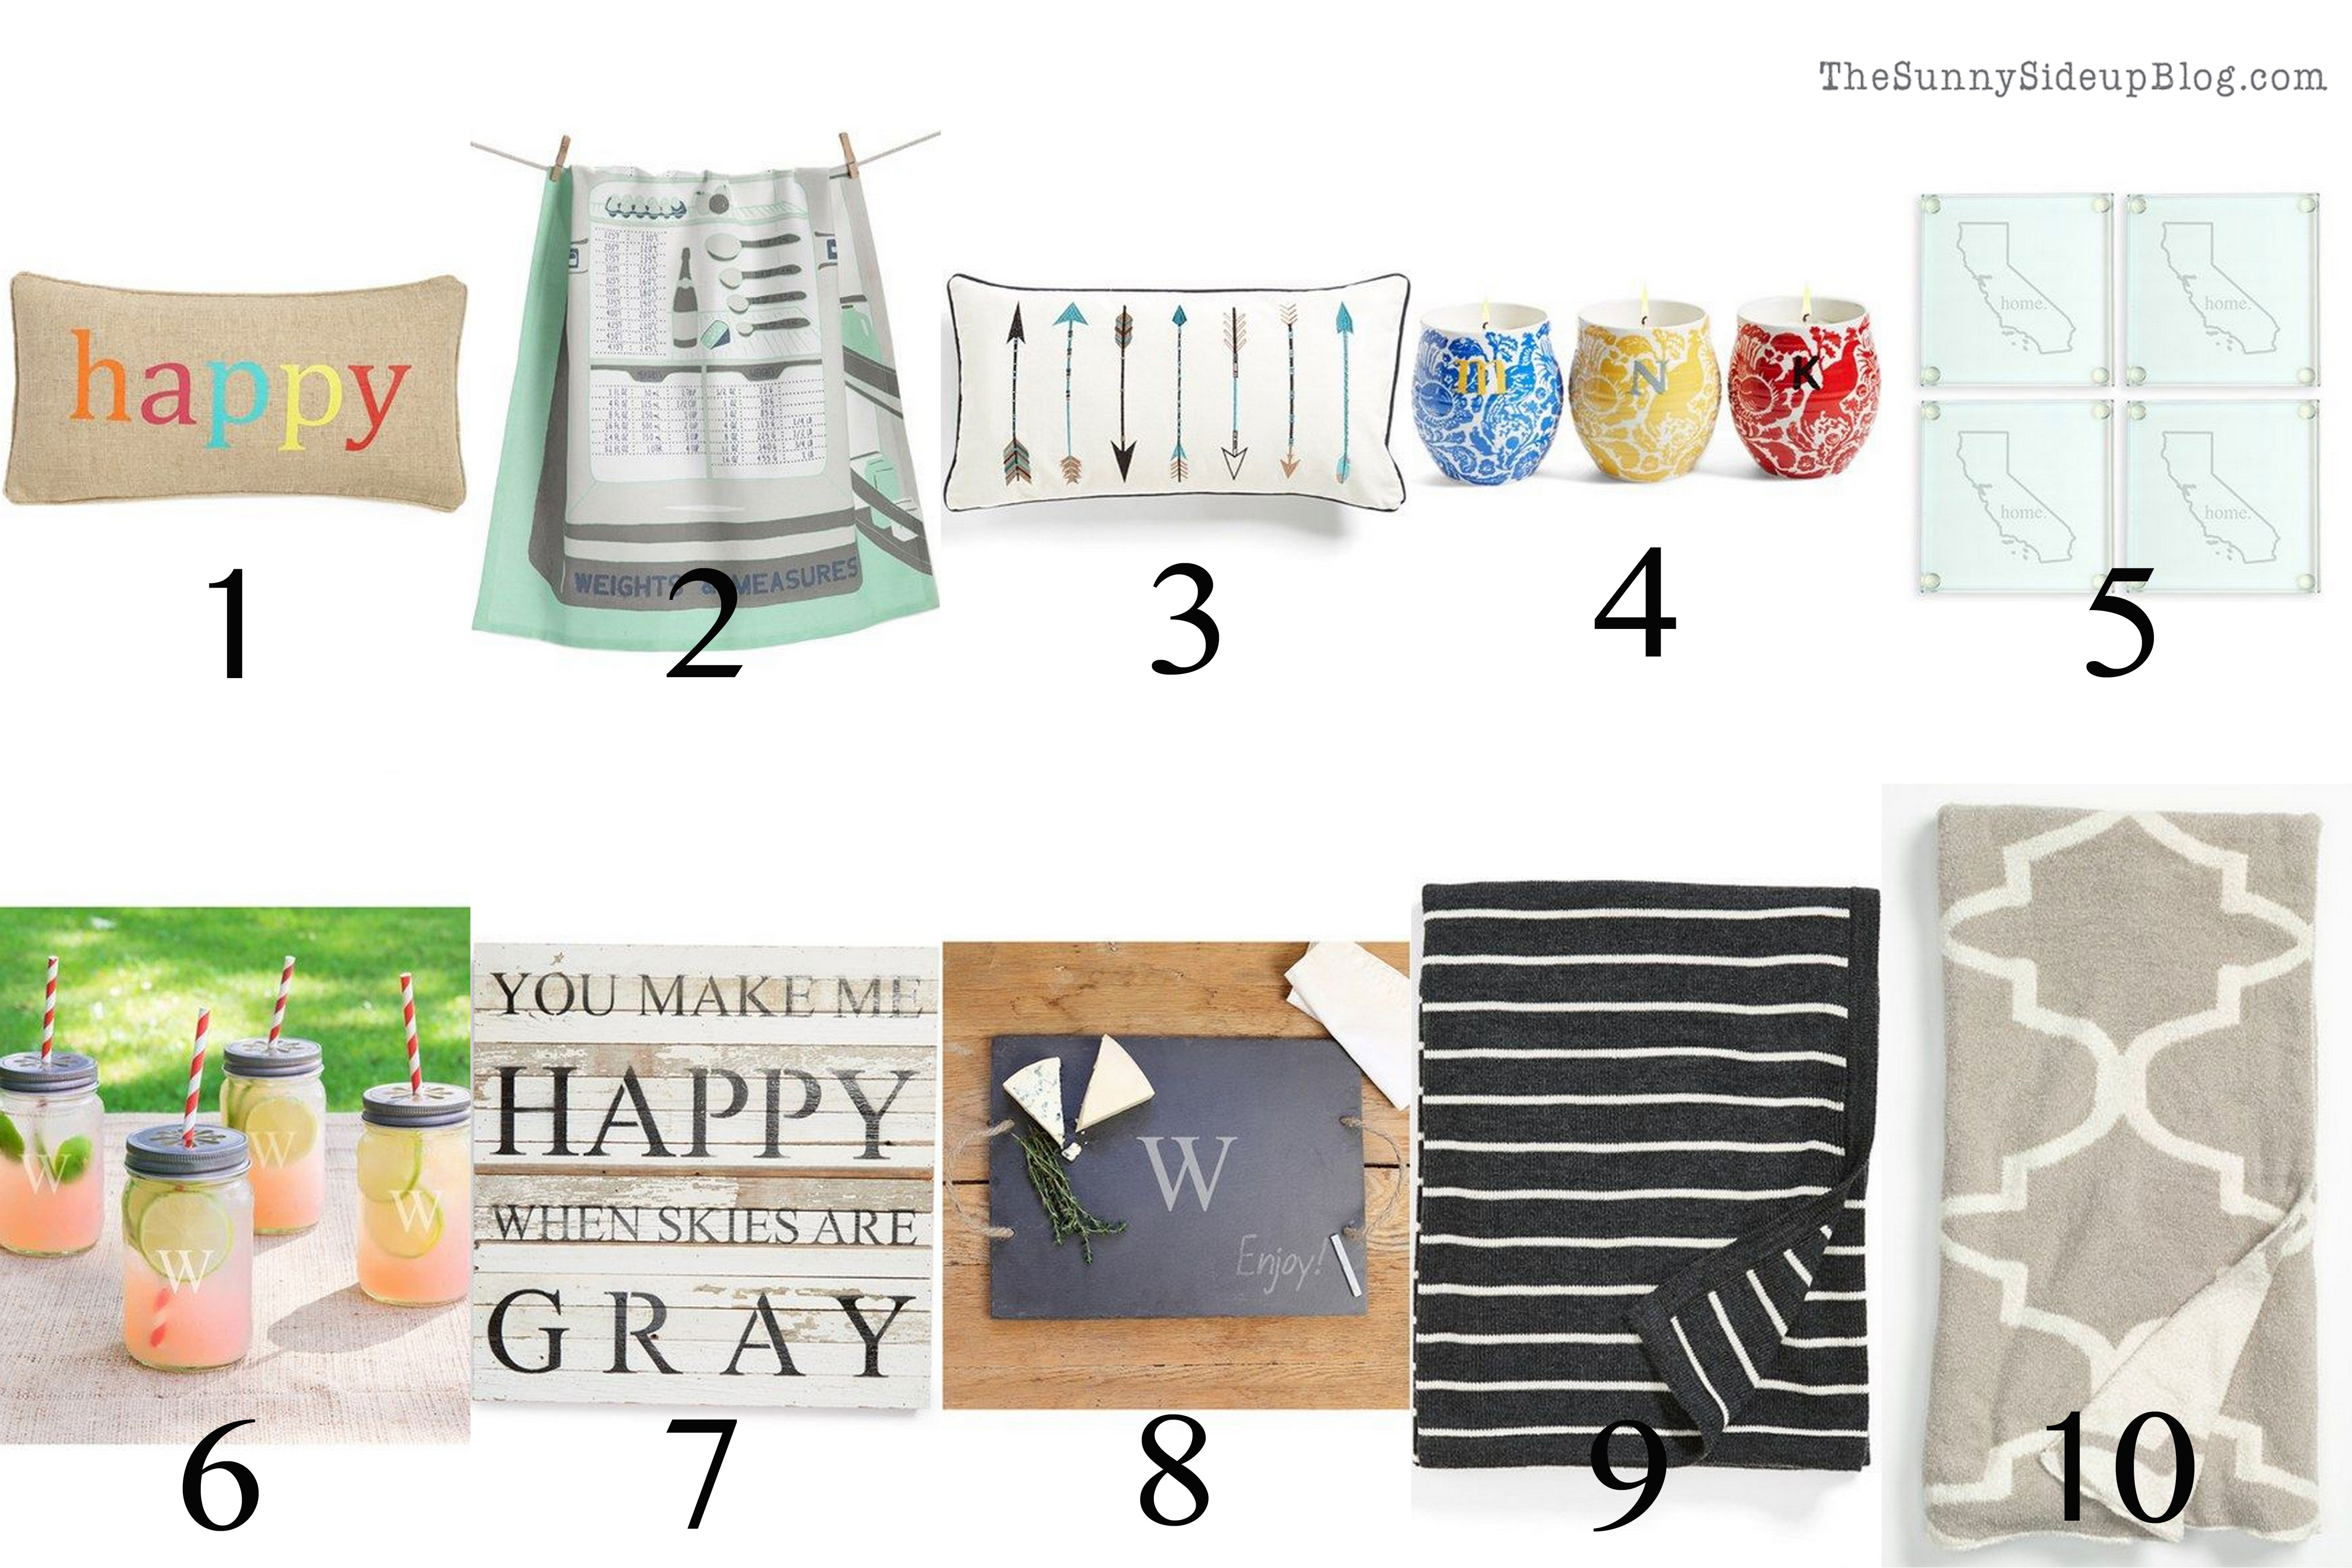 House happenings and fun finds